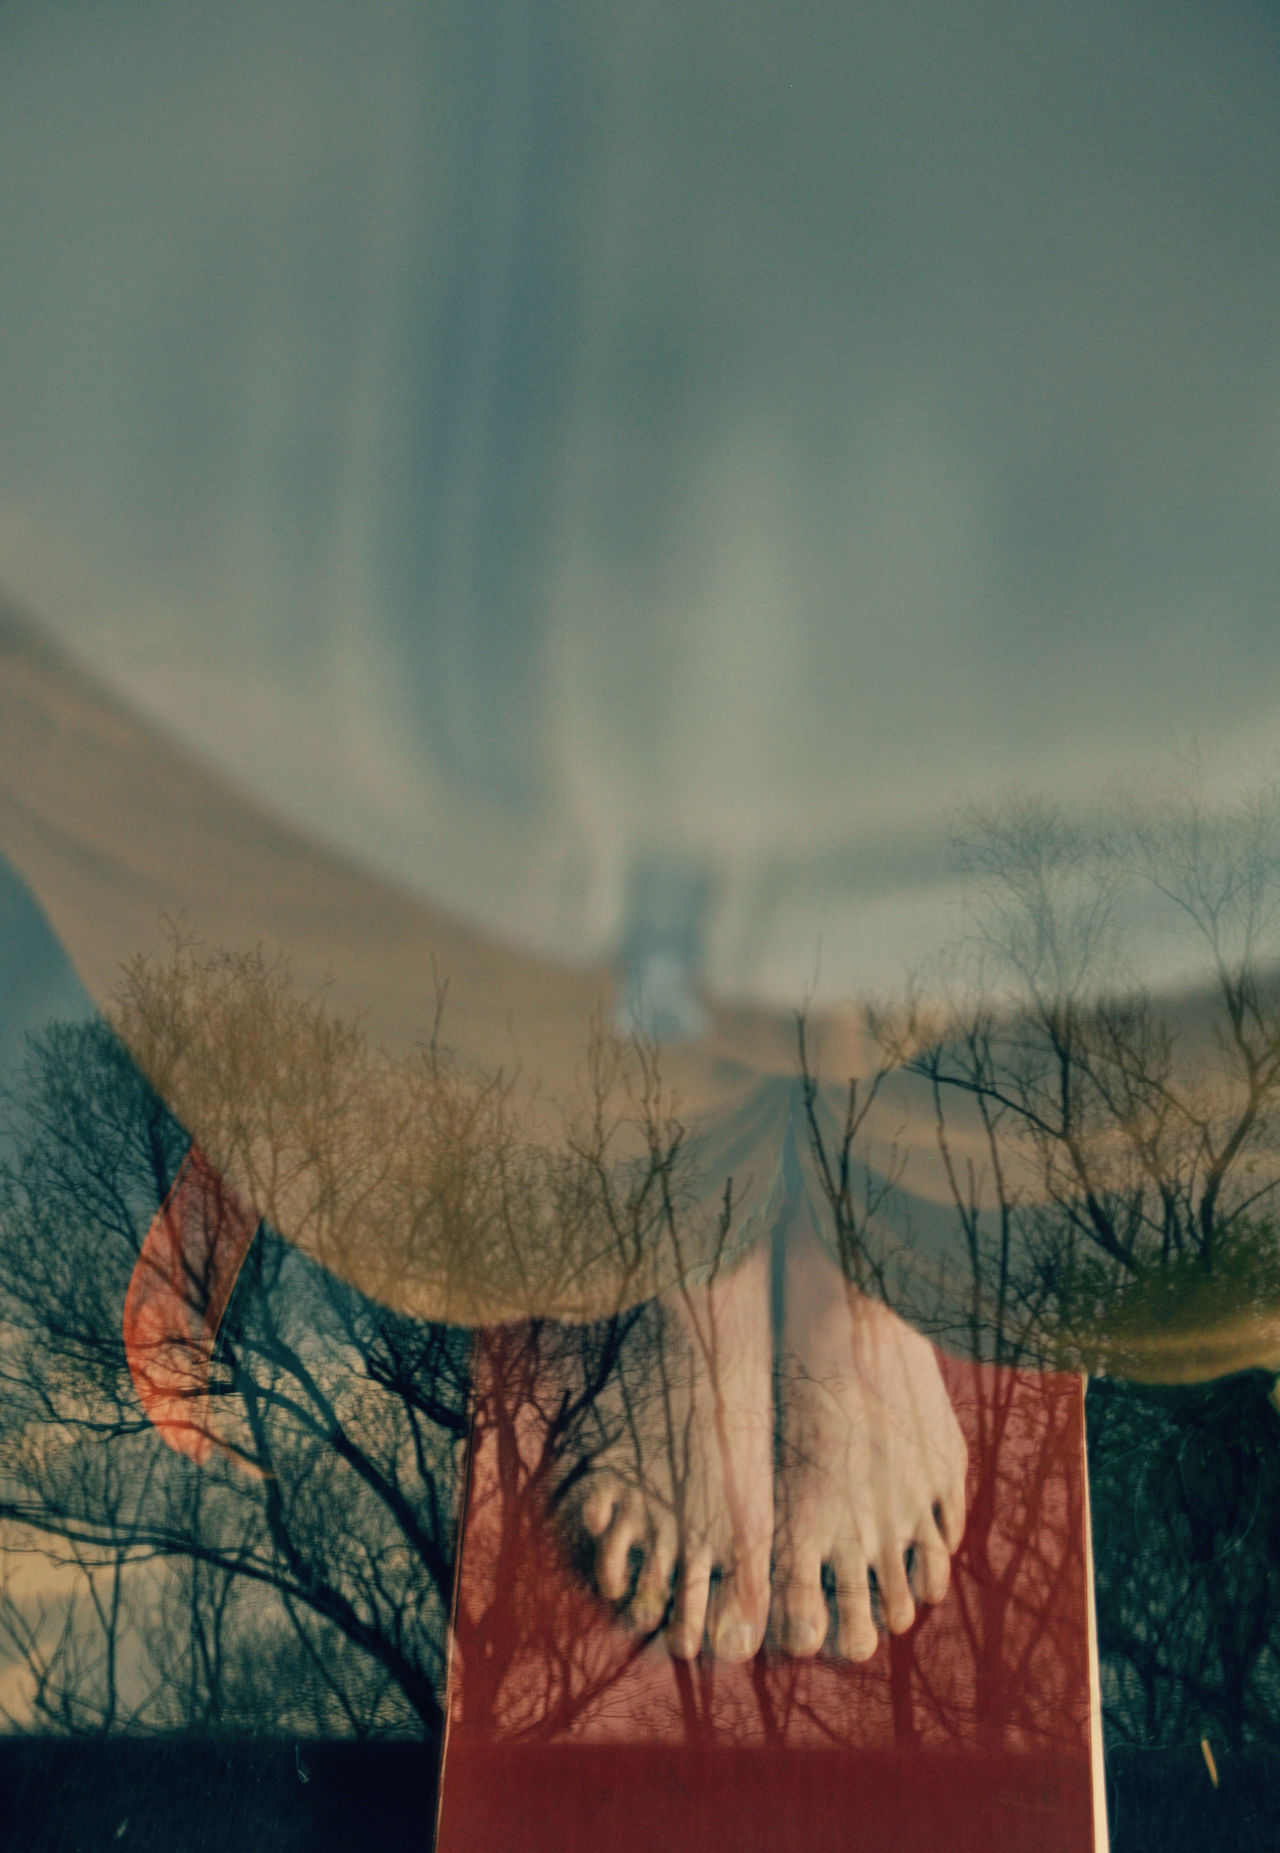 Double exposure of a figure from high angle view and trees Artistic Branches Calm Calmness Concept Conceptual Contemplation Creative Double Exposure Ecology Environment Feet Man And Nature Meditation Mindful Mindfulness Nature One With Nature Origin Peace Rooted Roots ThoughtProvoking Trees Wellbeing